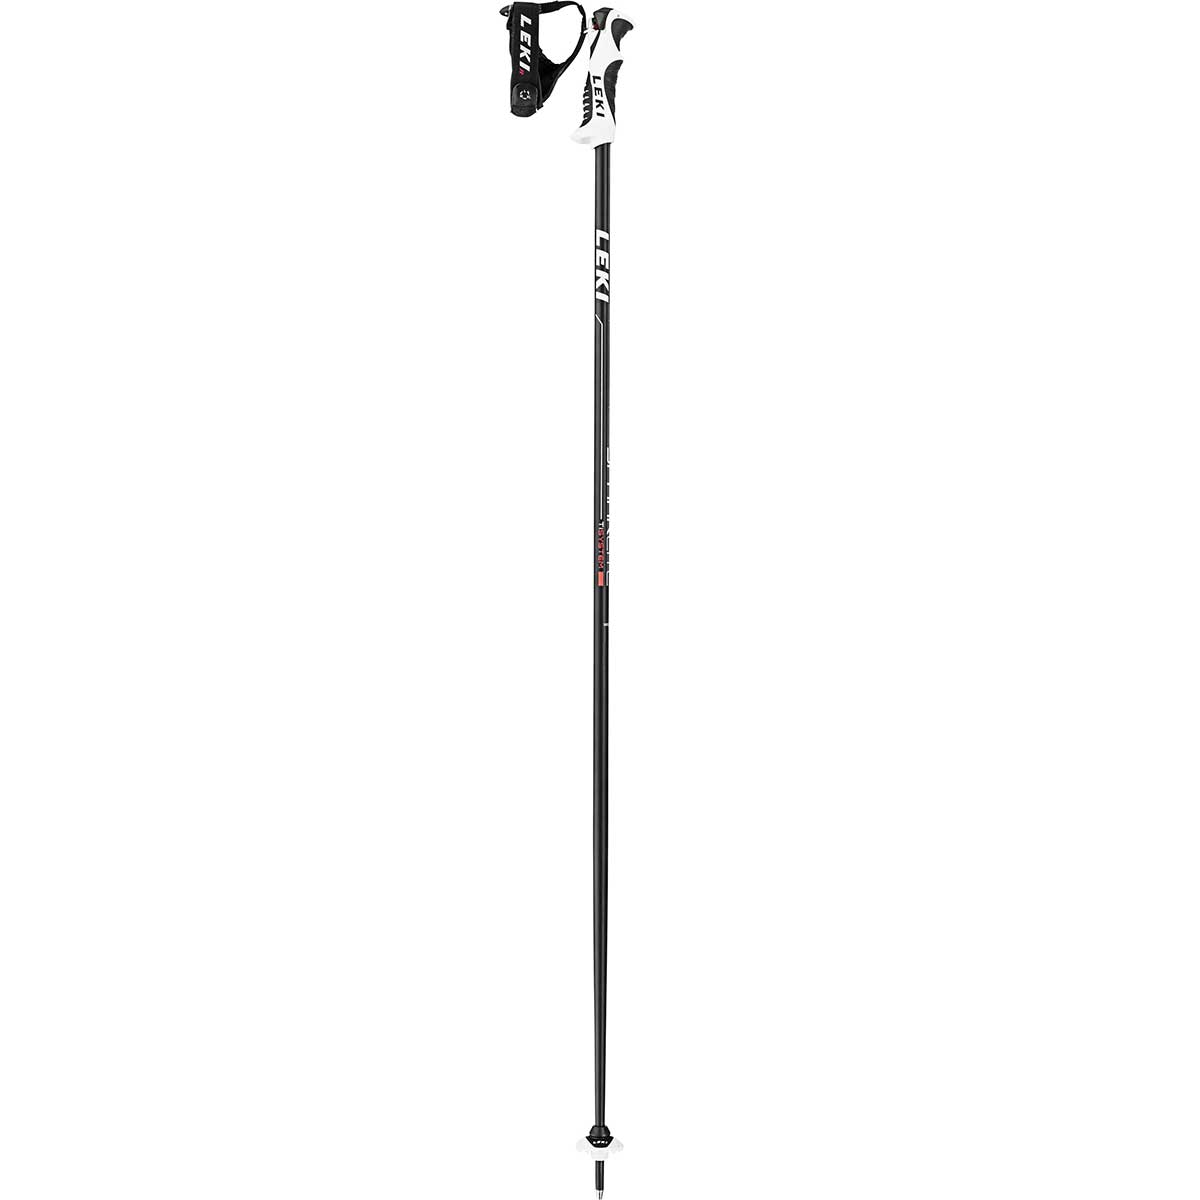 Leki Spark Lite S ski pole in antracite and red